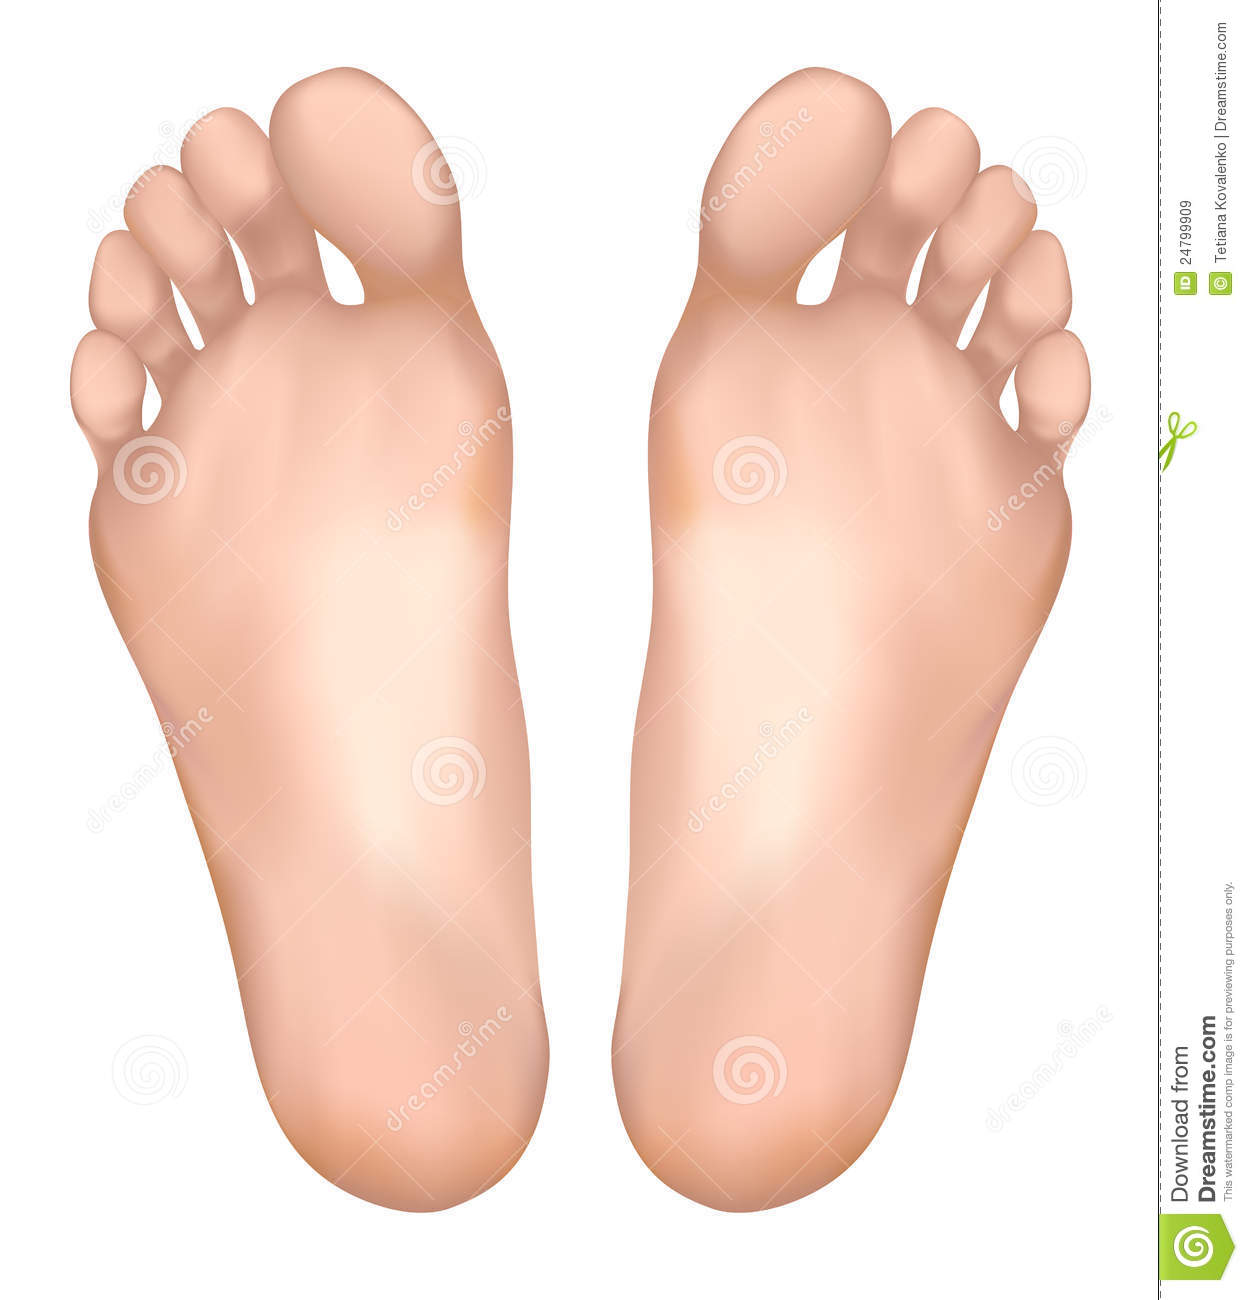 Skin Cream  >> Healthy Feet. Royalty Free Stock Images - Image: 24799909